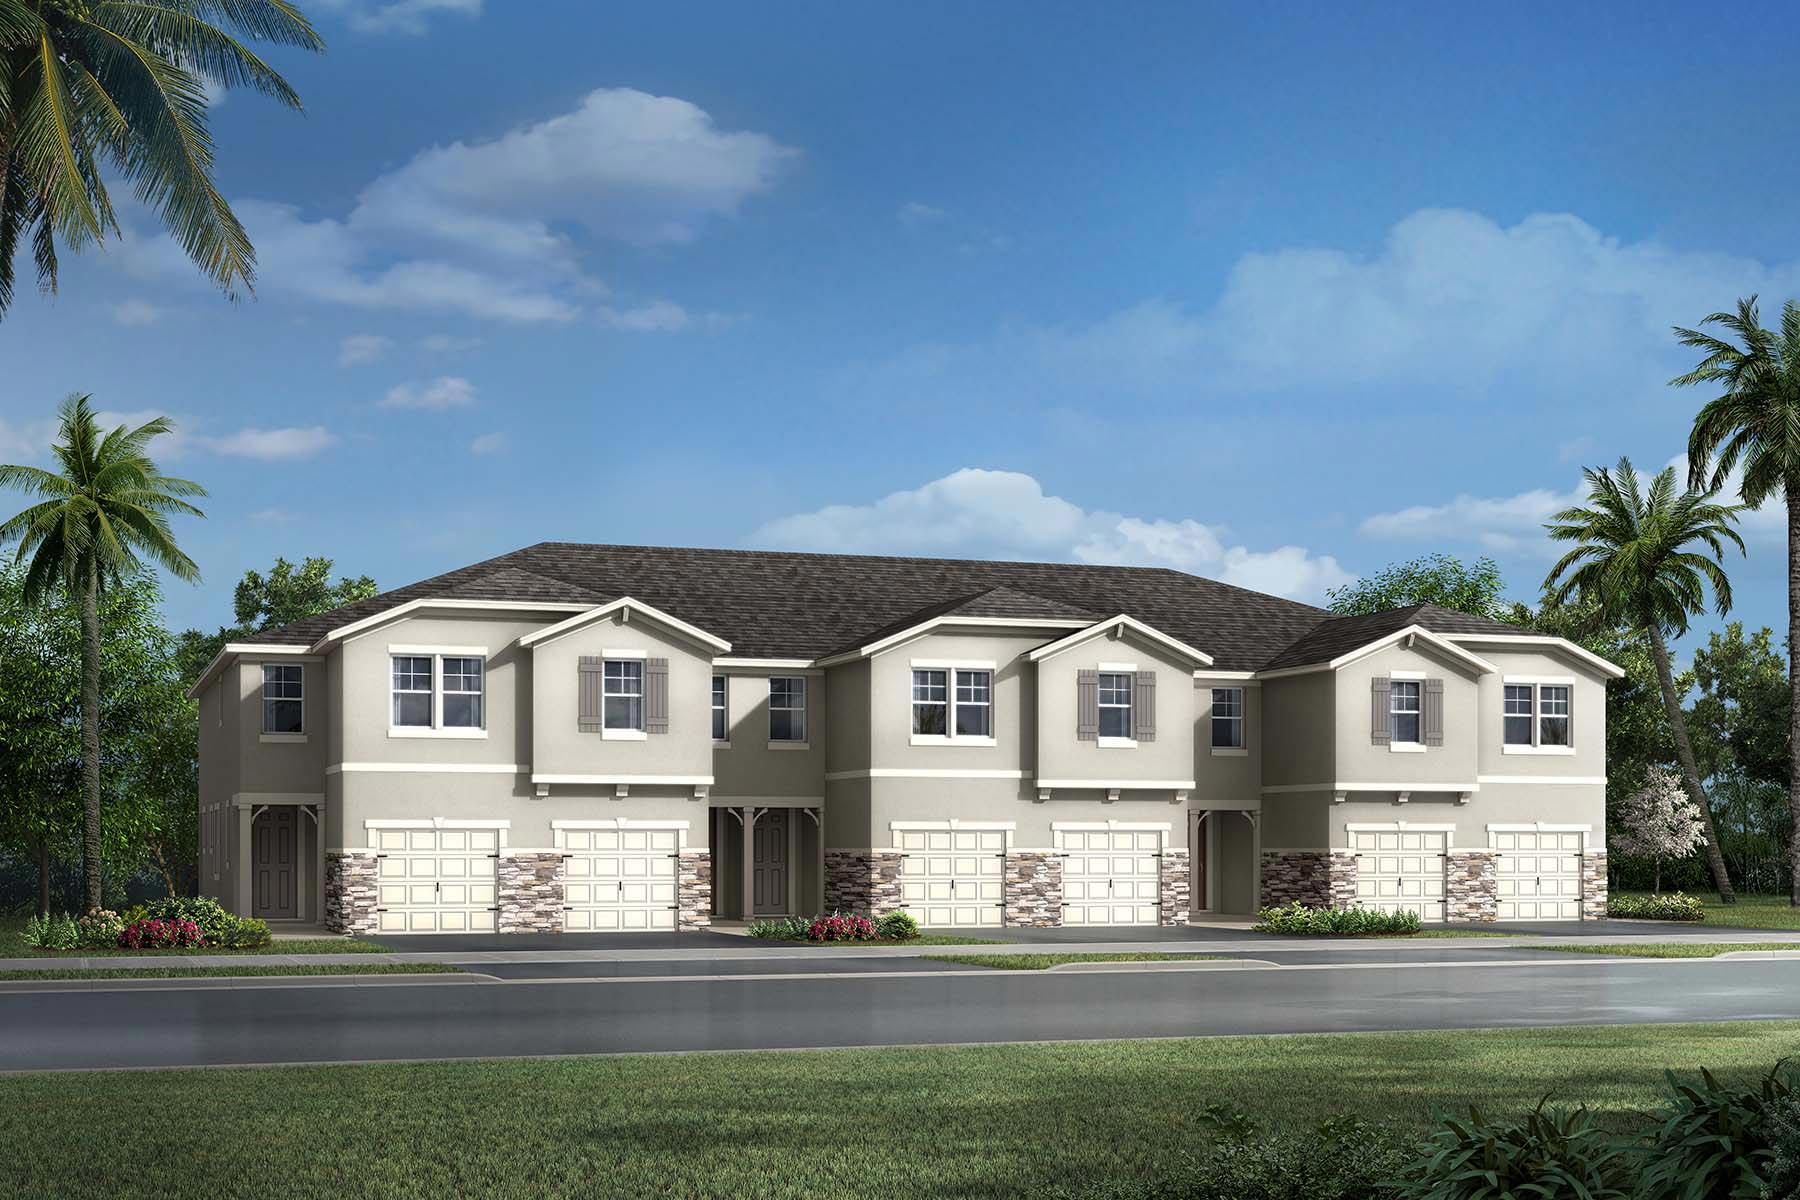 Ormond Plan TownHomes at Avea Pointe in Lutz Florida by Mattamy Homes